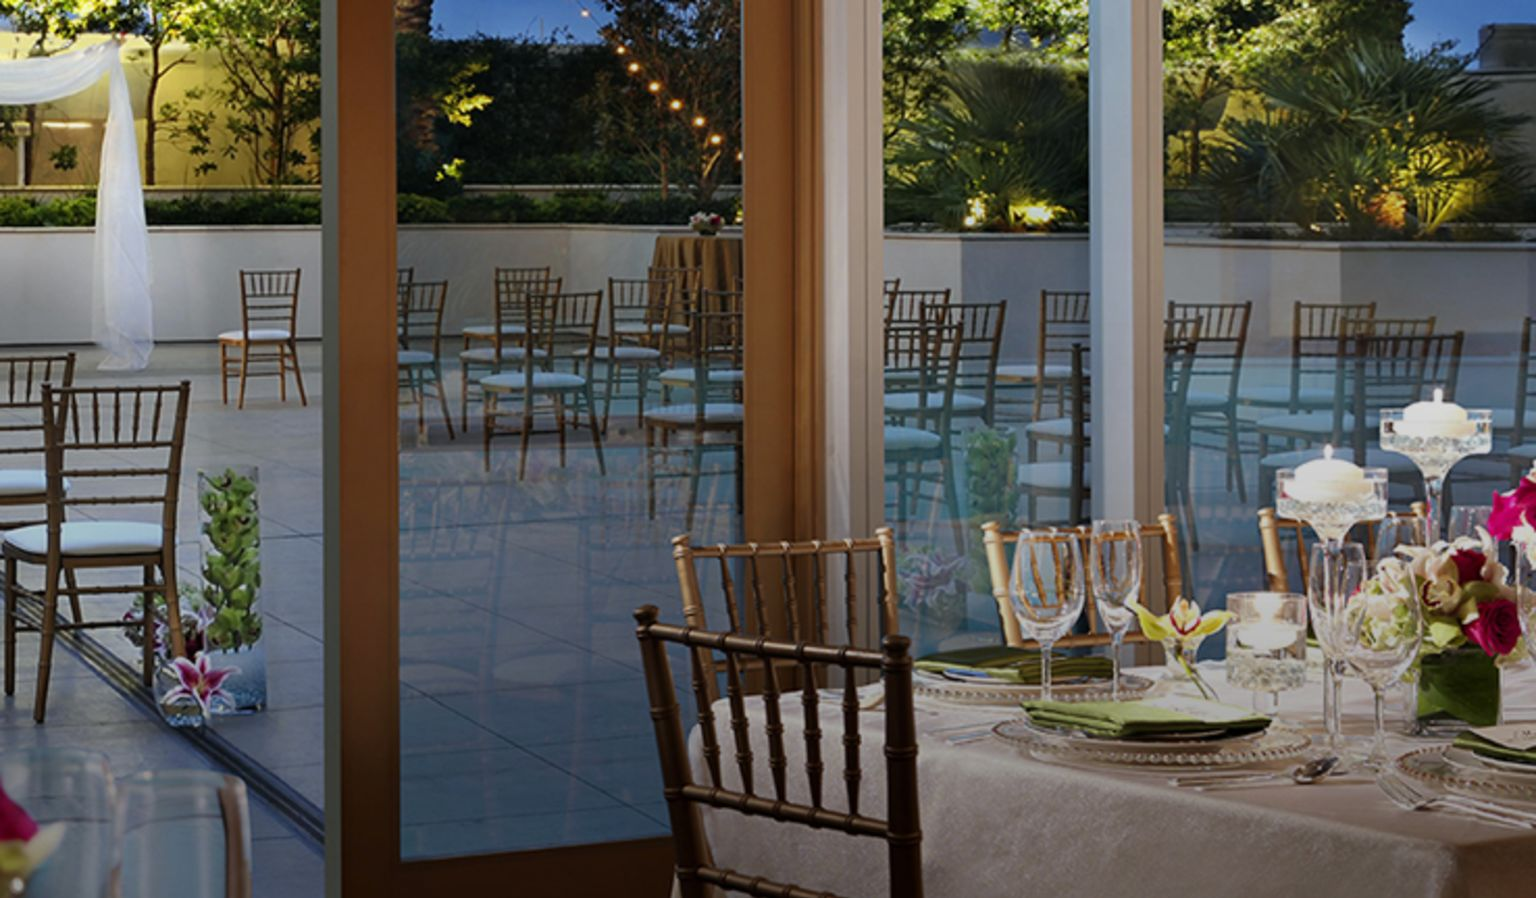 Outdoor Wedding Venue and Indoor Reception Space